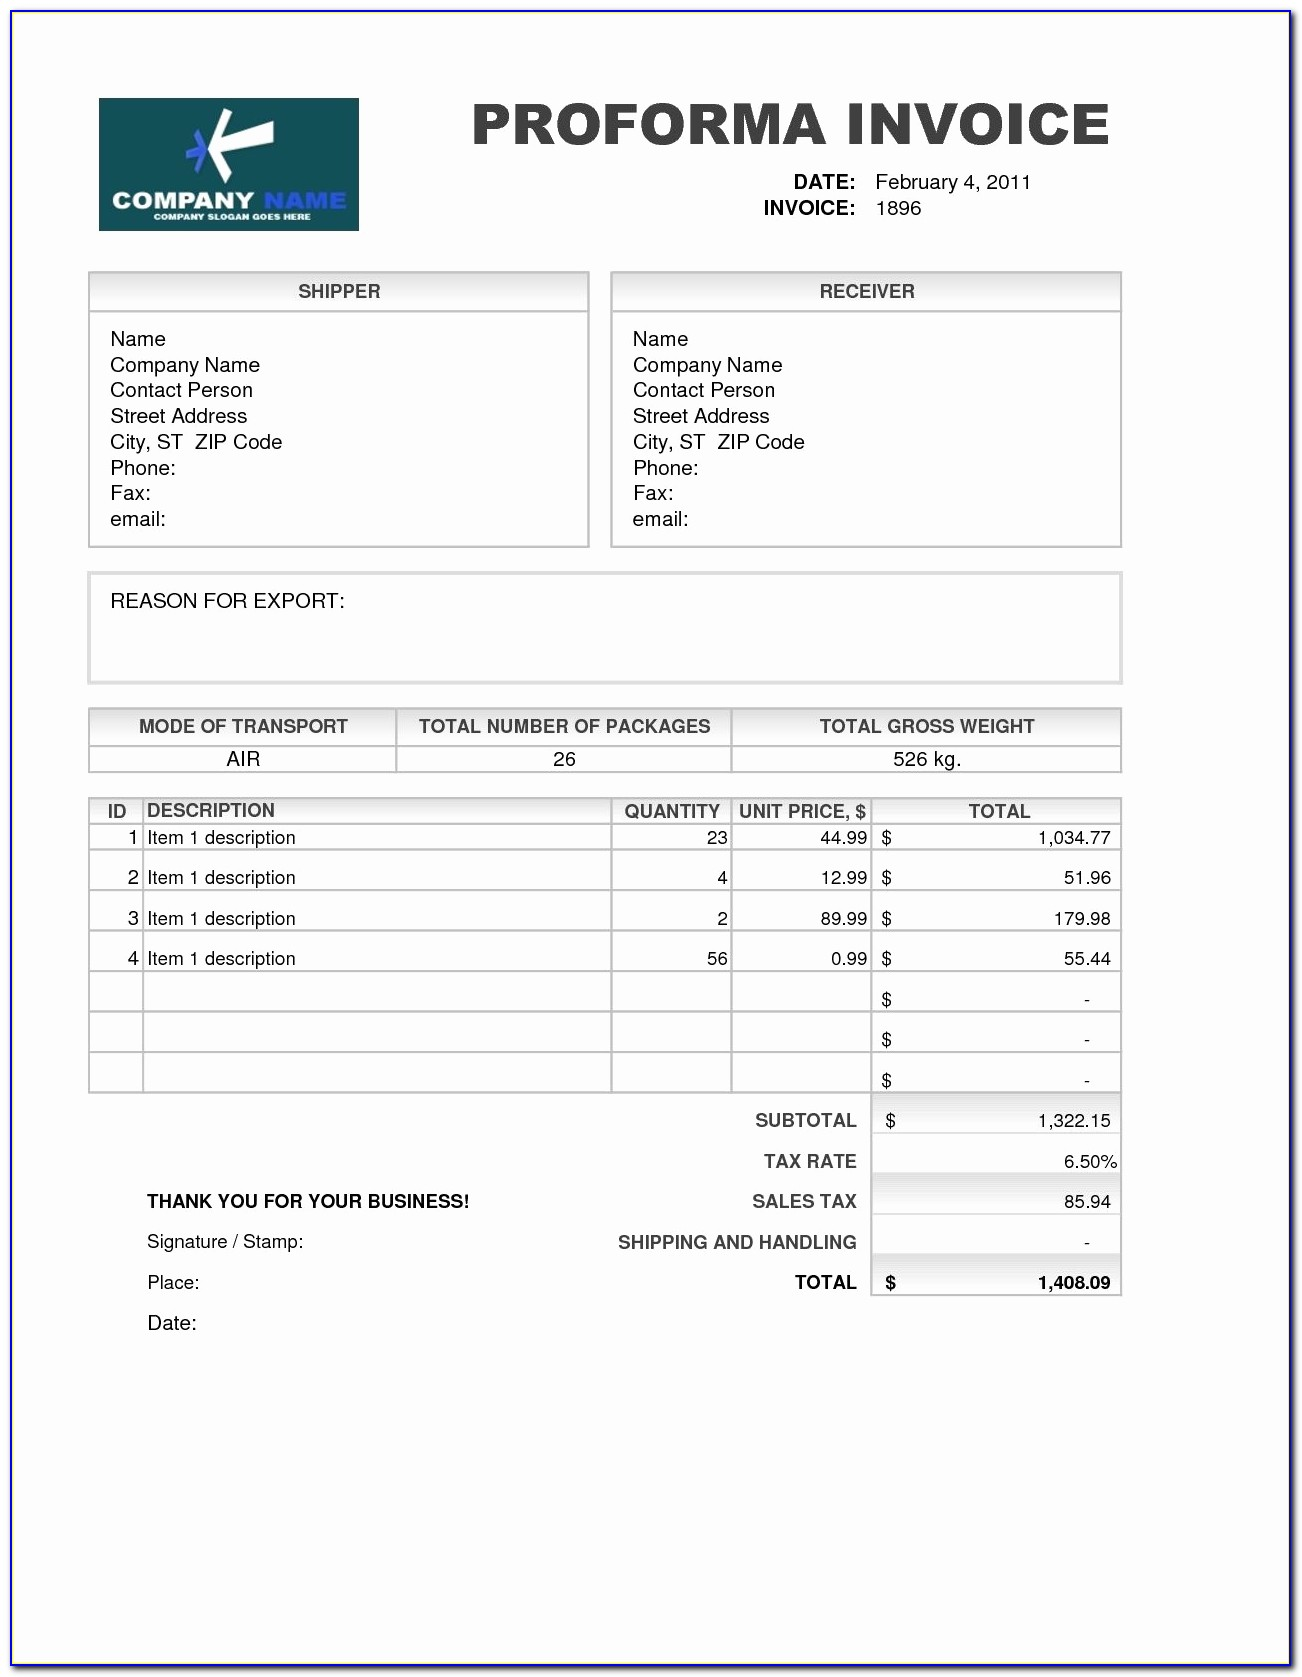 Proforma Invoice Template Unique Samples Of Proforma Invoice Invoice Template Free 2016 Meaning